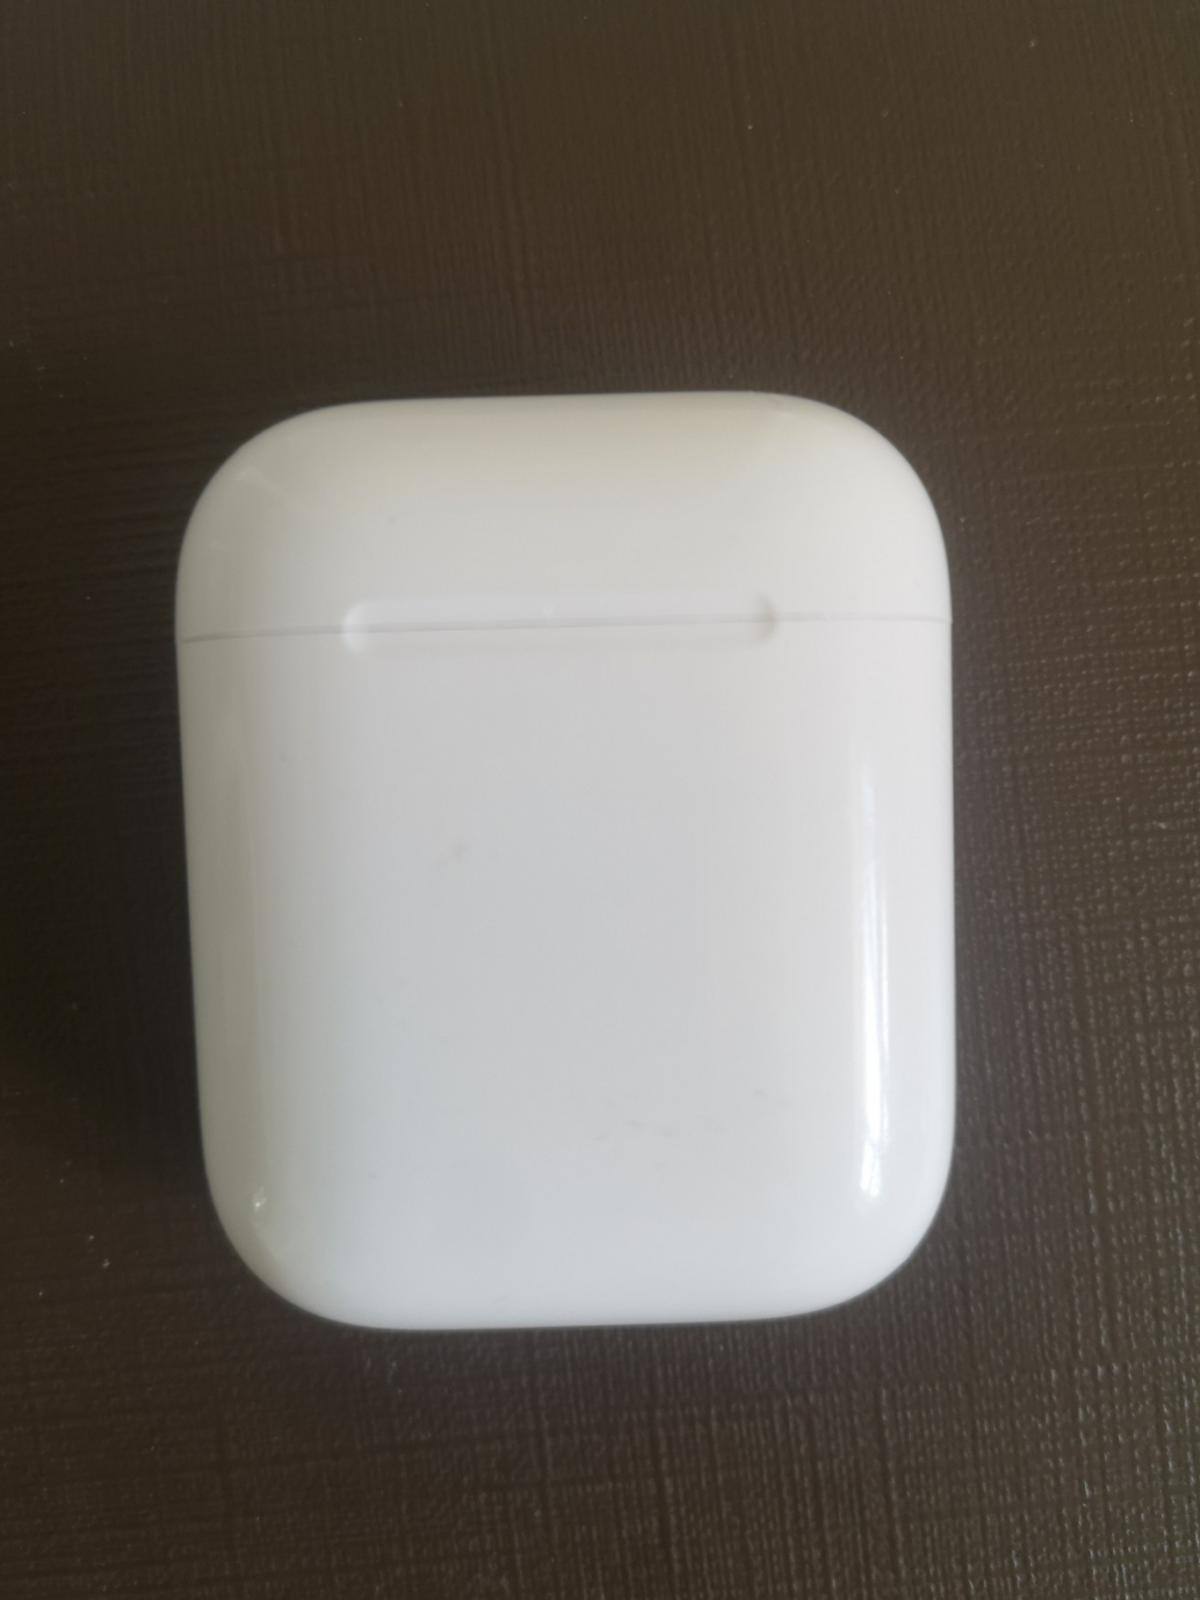 1st Generation Airpods Case Miner scuffing, over all conditions good  Just the case.